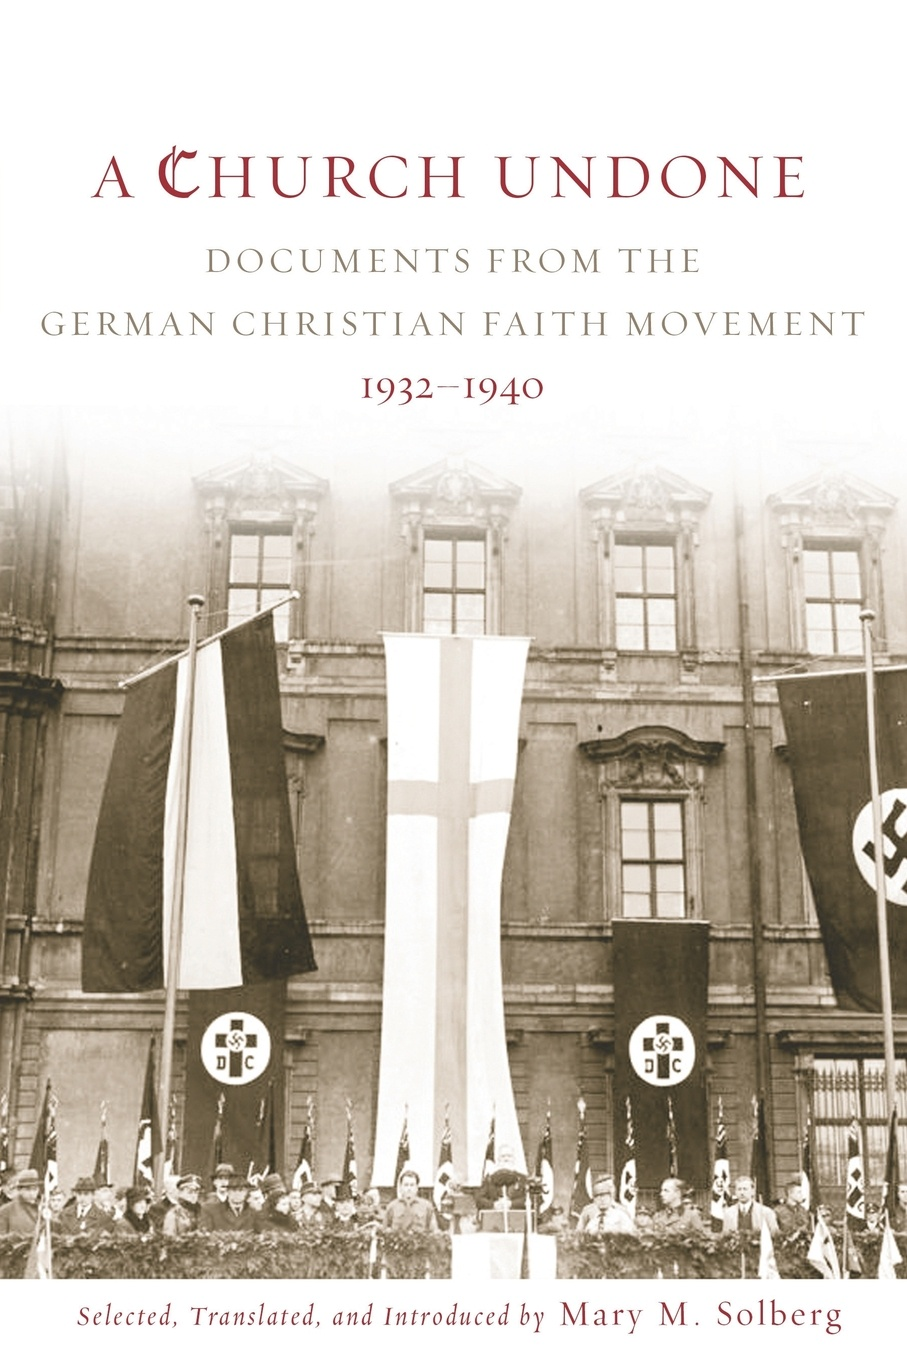 Church Undone. Documents from the German Christian Faith Movement, 1932-1940 stephanie tyler coming undone